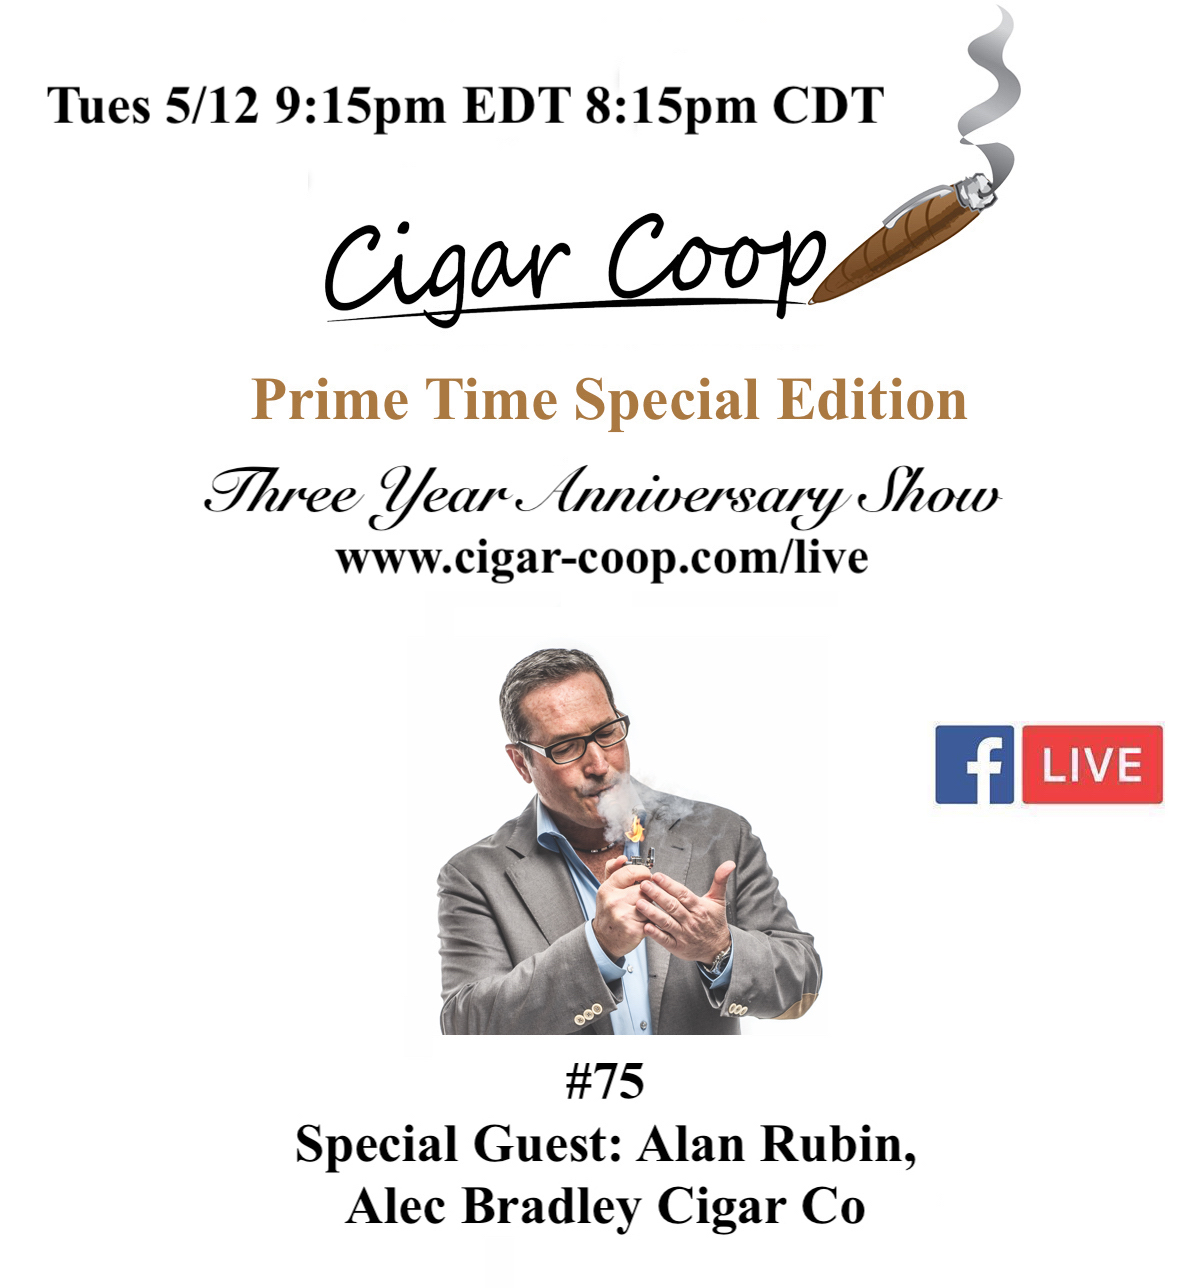 Prime Time Special Edition 75: Three Year Anniversary Show with Alan Rubin, Alec Bradley Cigar Co.